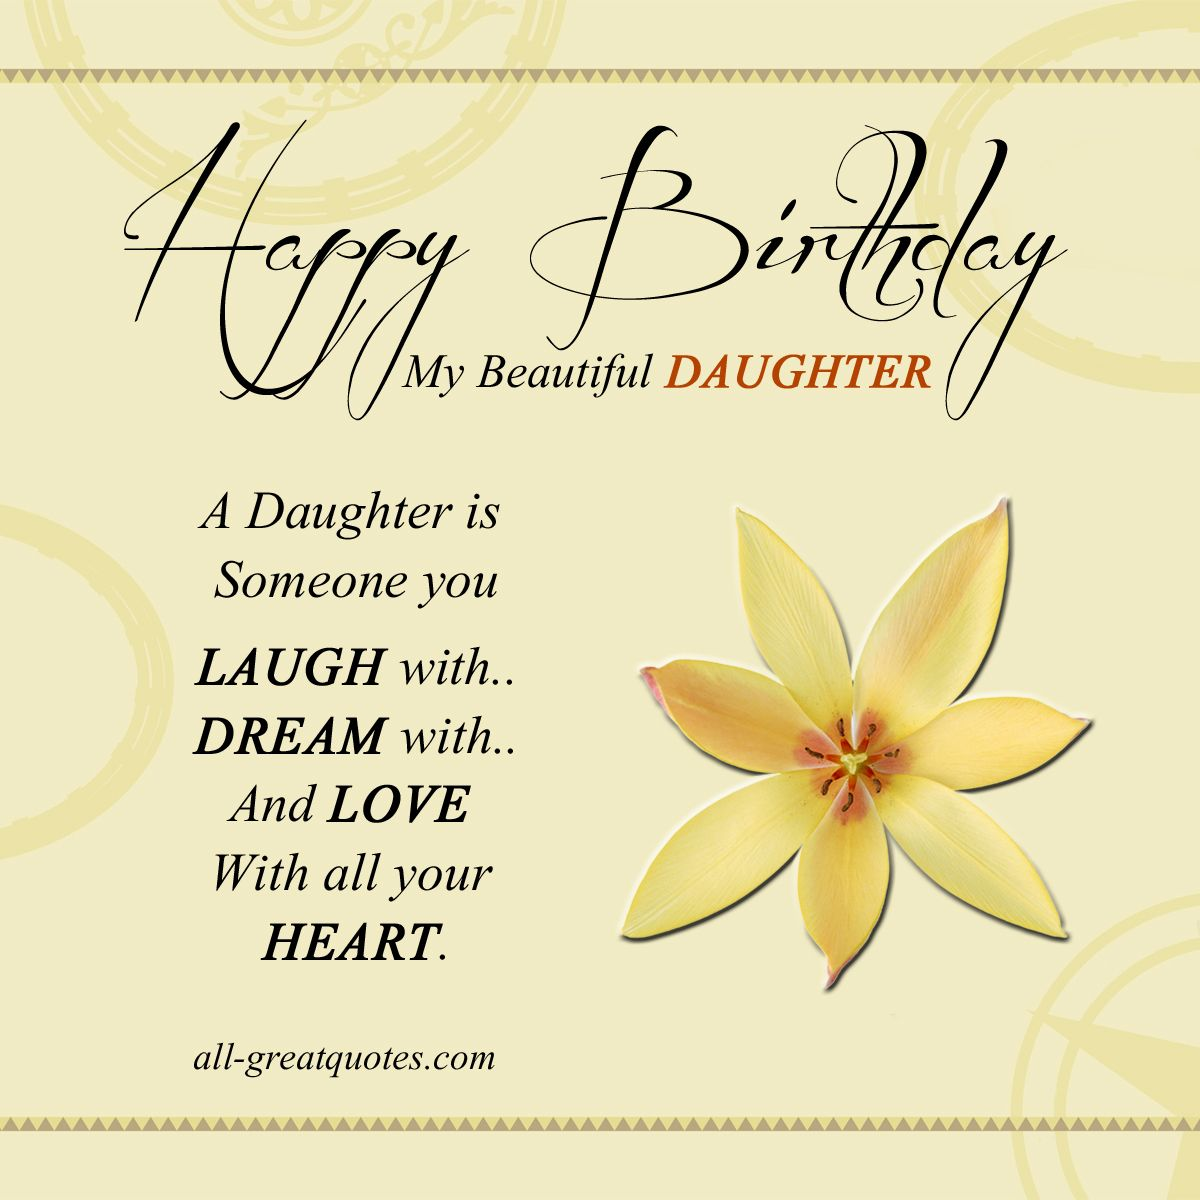 Happy Birthday To My Beautiful Daughter With Images Birthday